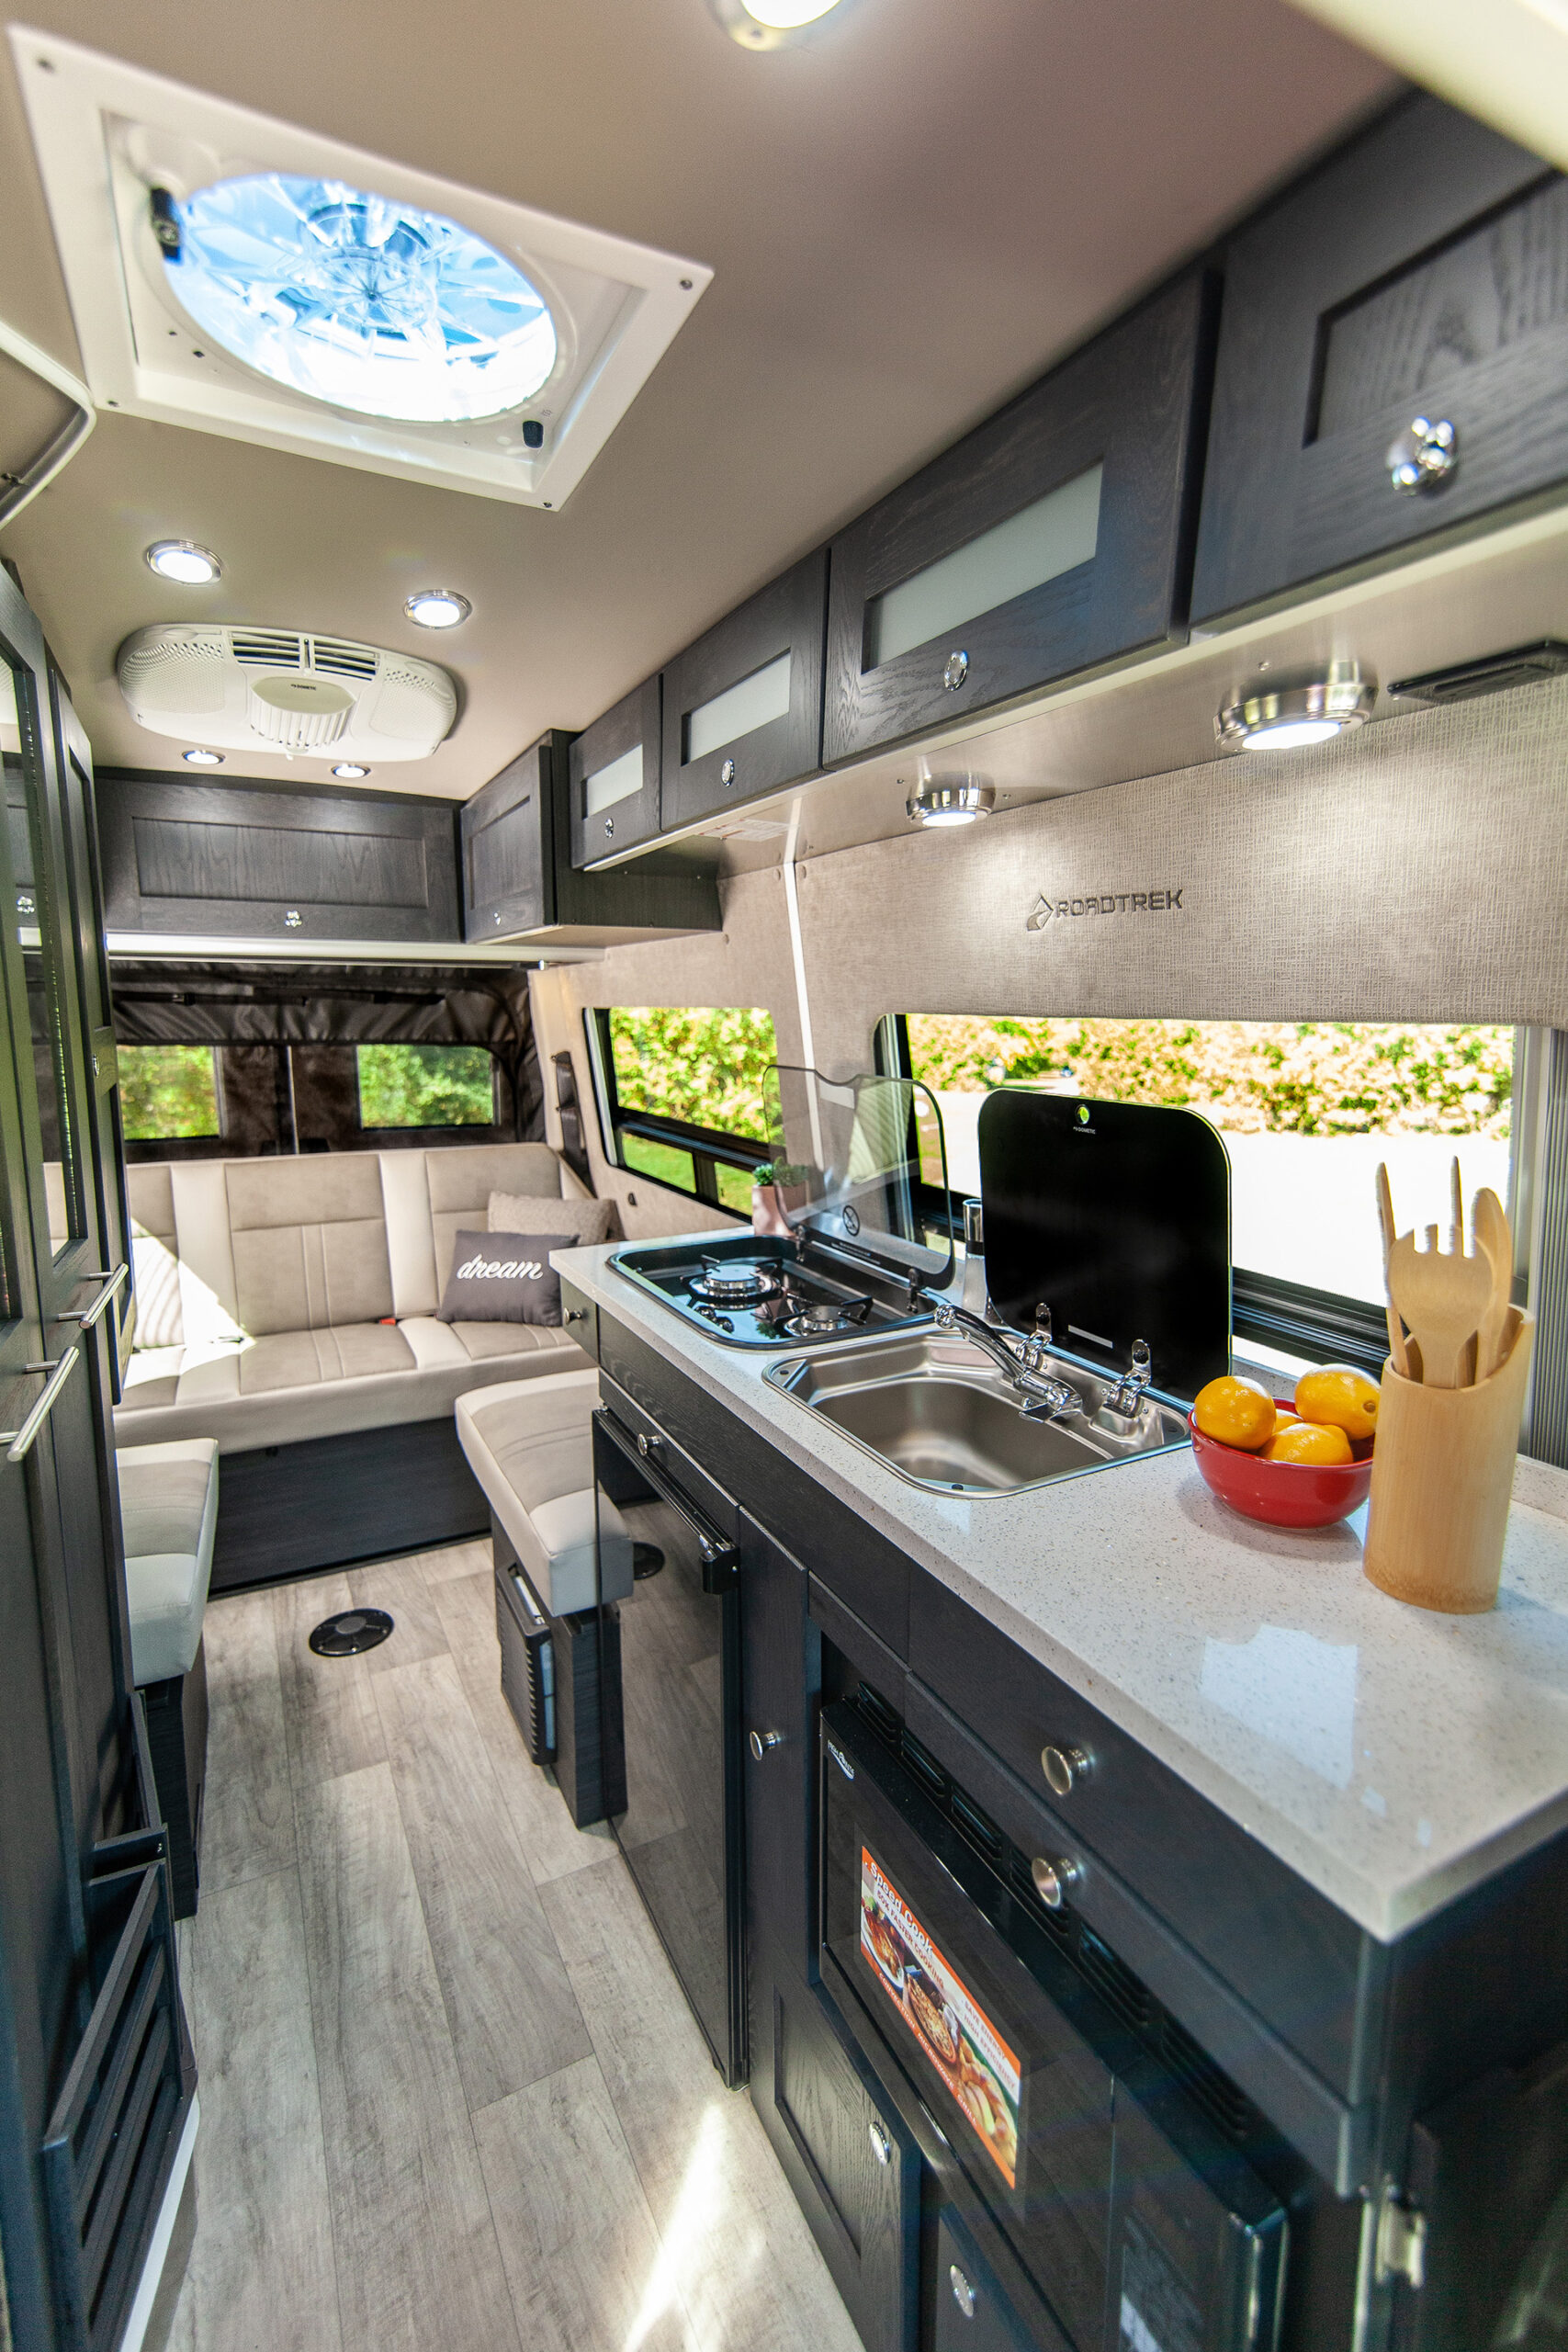 Interior of the SS Agile, a small RV / camper van looking towards the